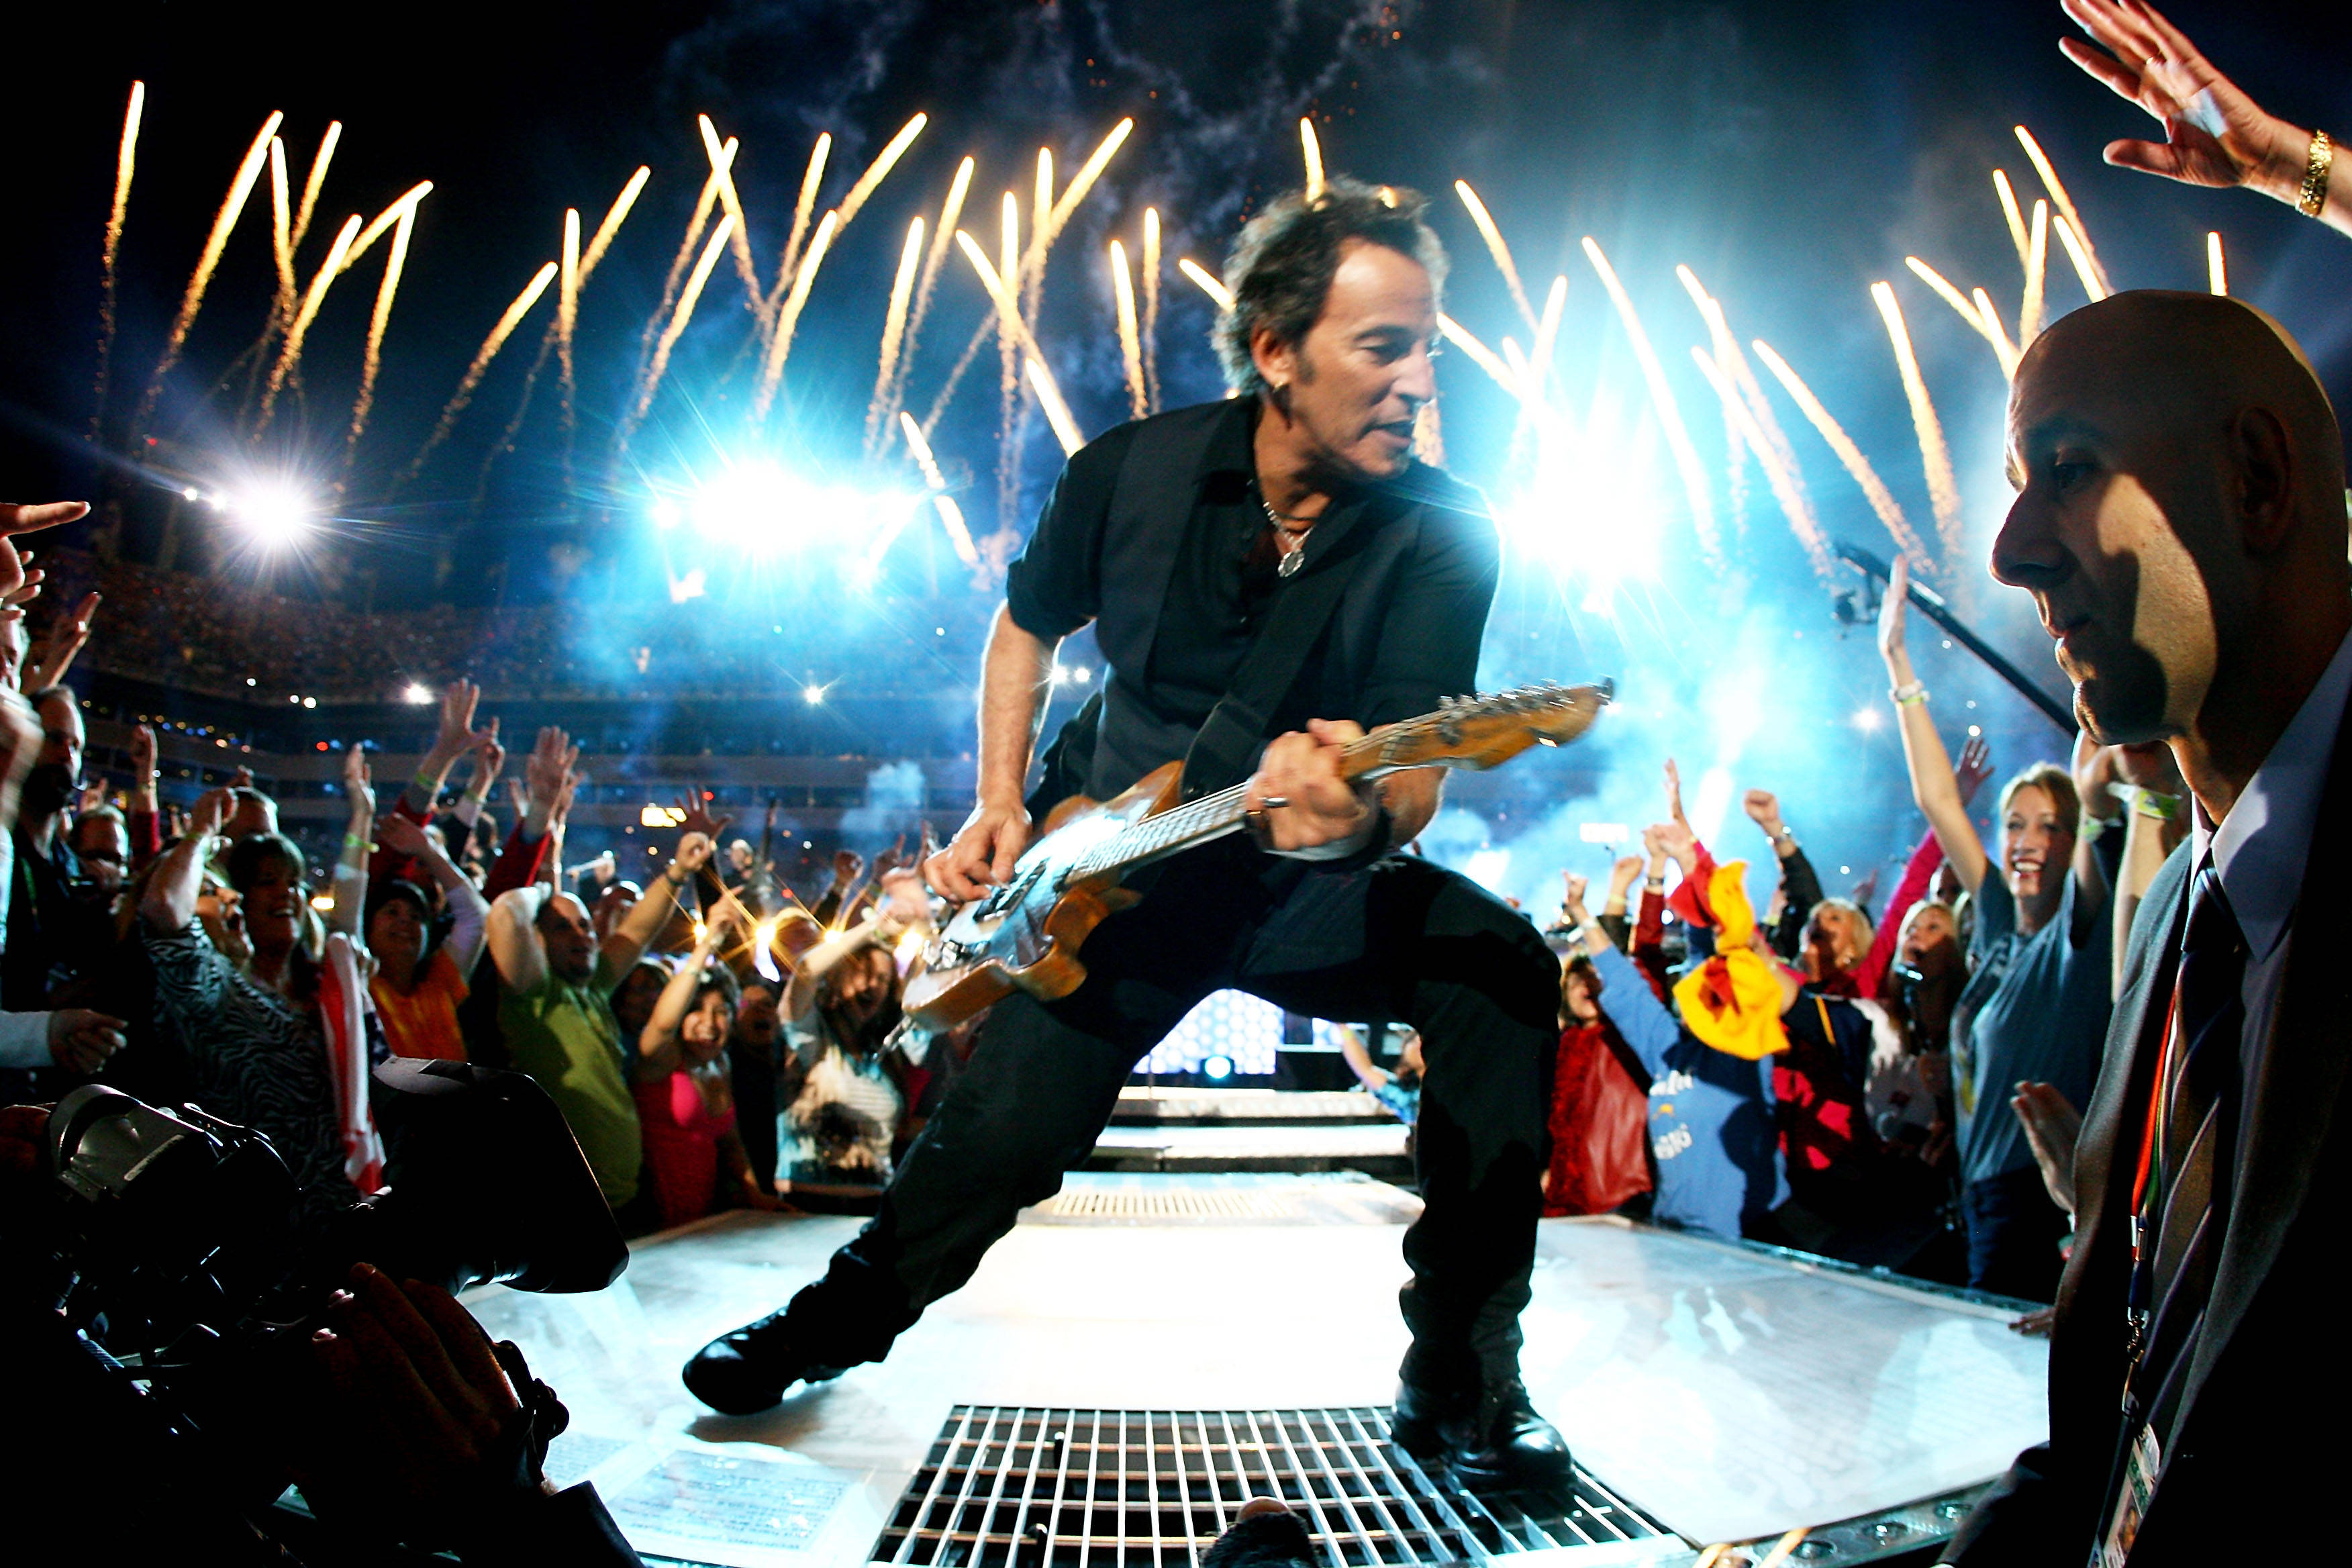 Bruce springsteen Celebrity HD Wallpaper